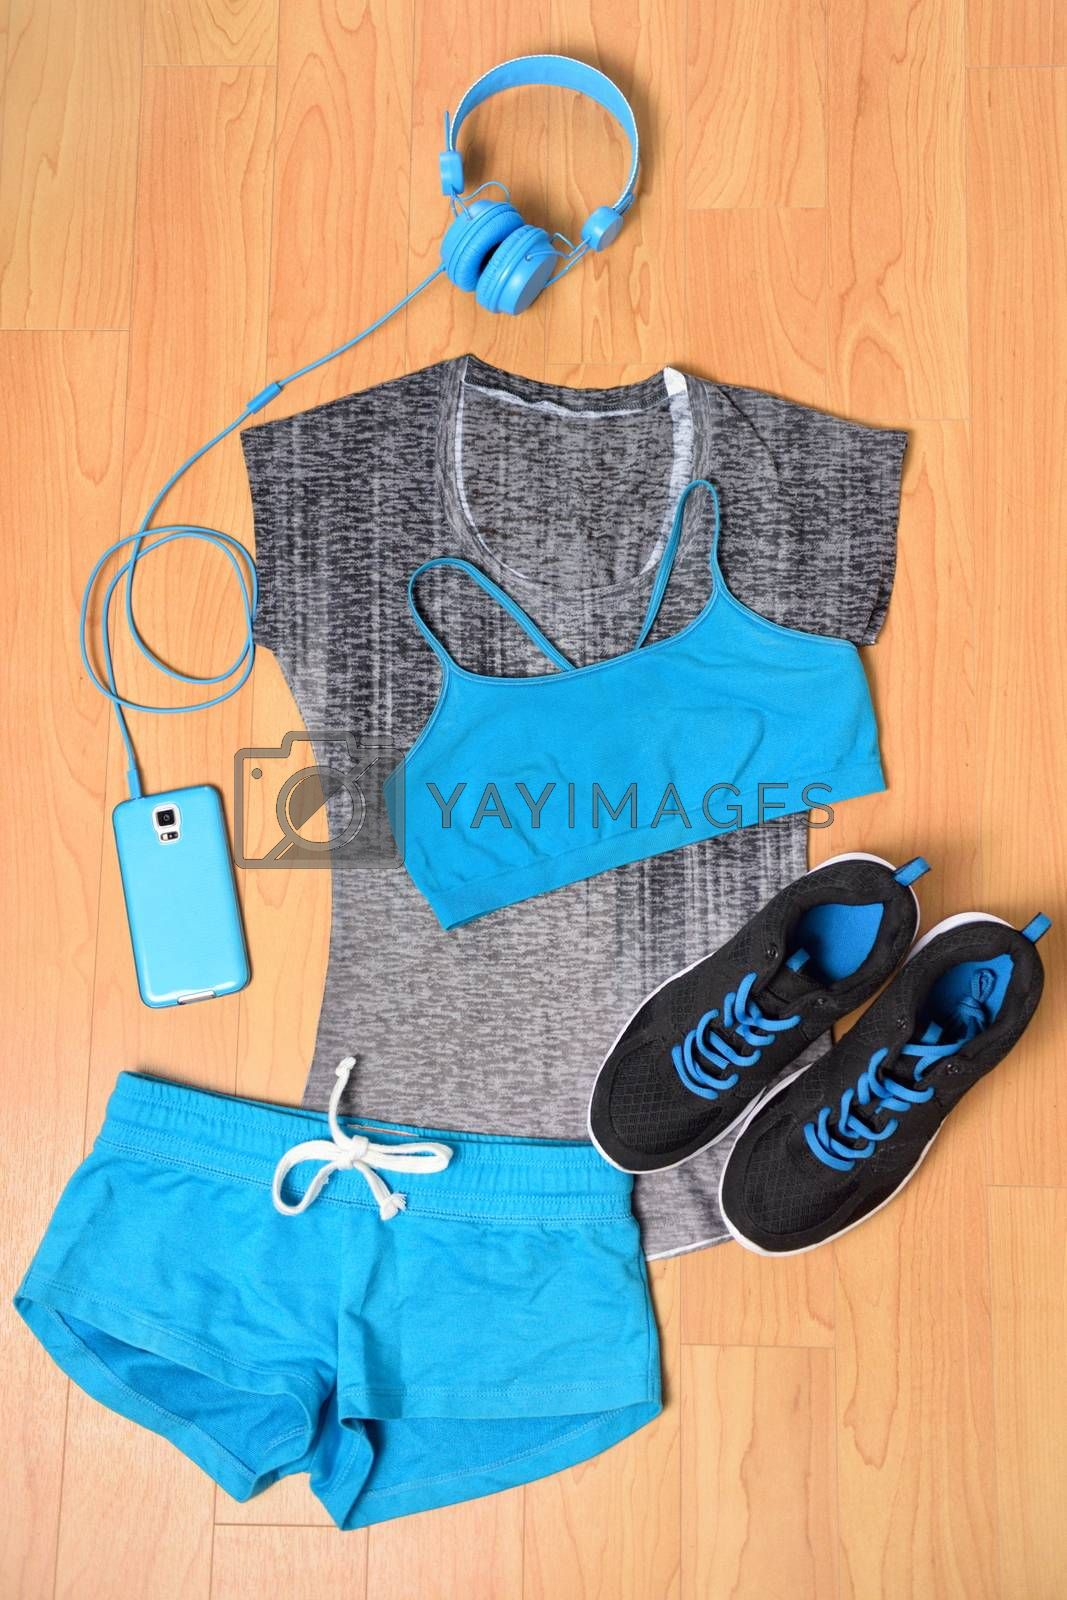 Gym outfit - workout clothing and smartphone by Maridav